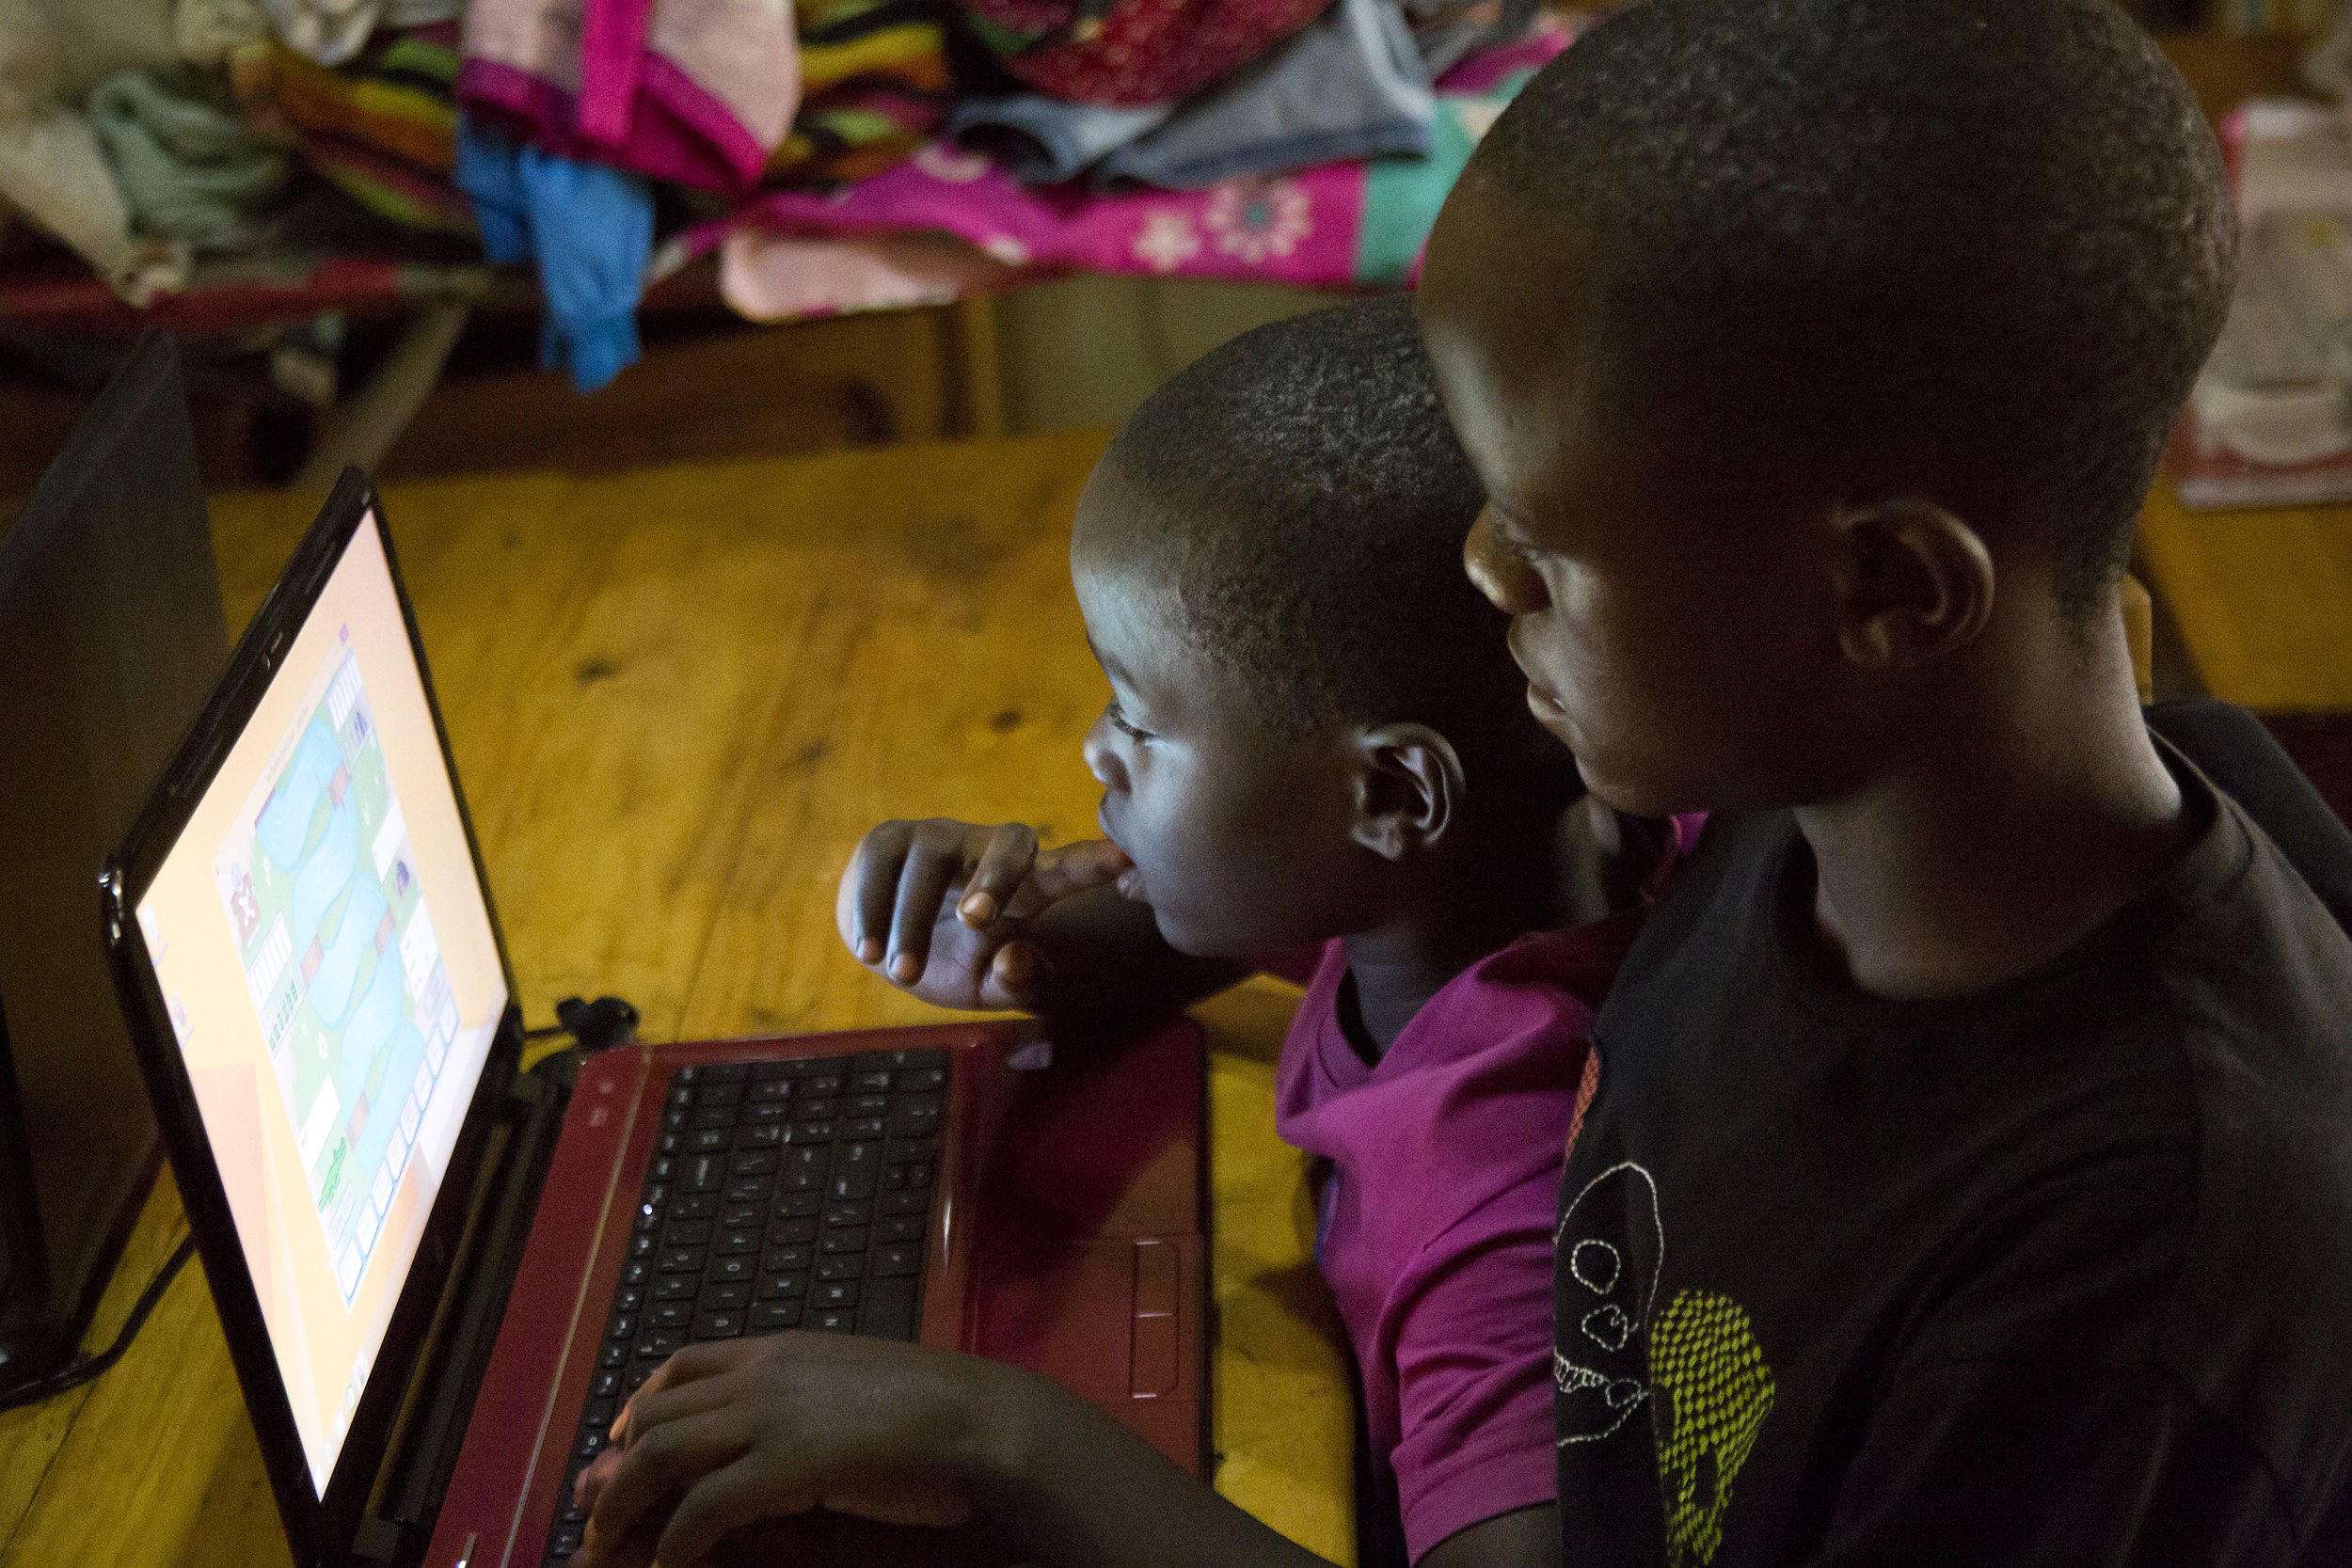 Janvier helping Manzi out with a typing program